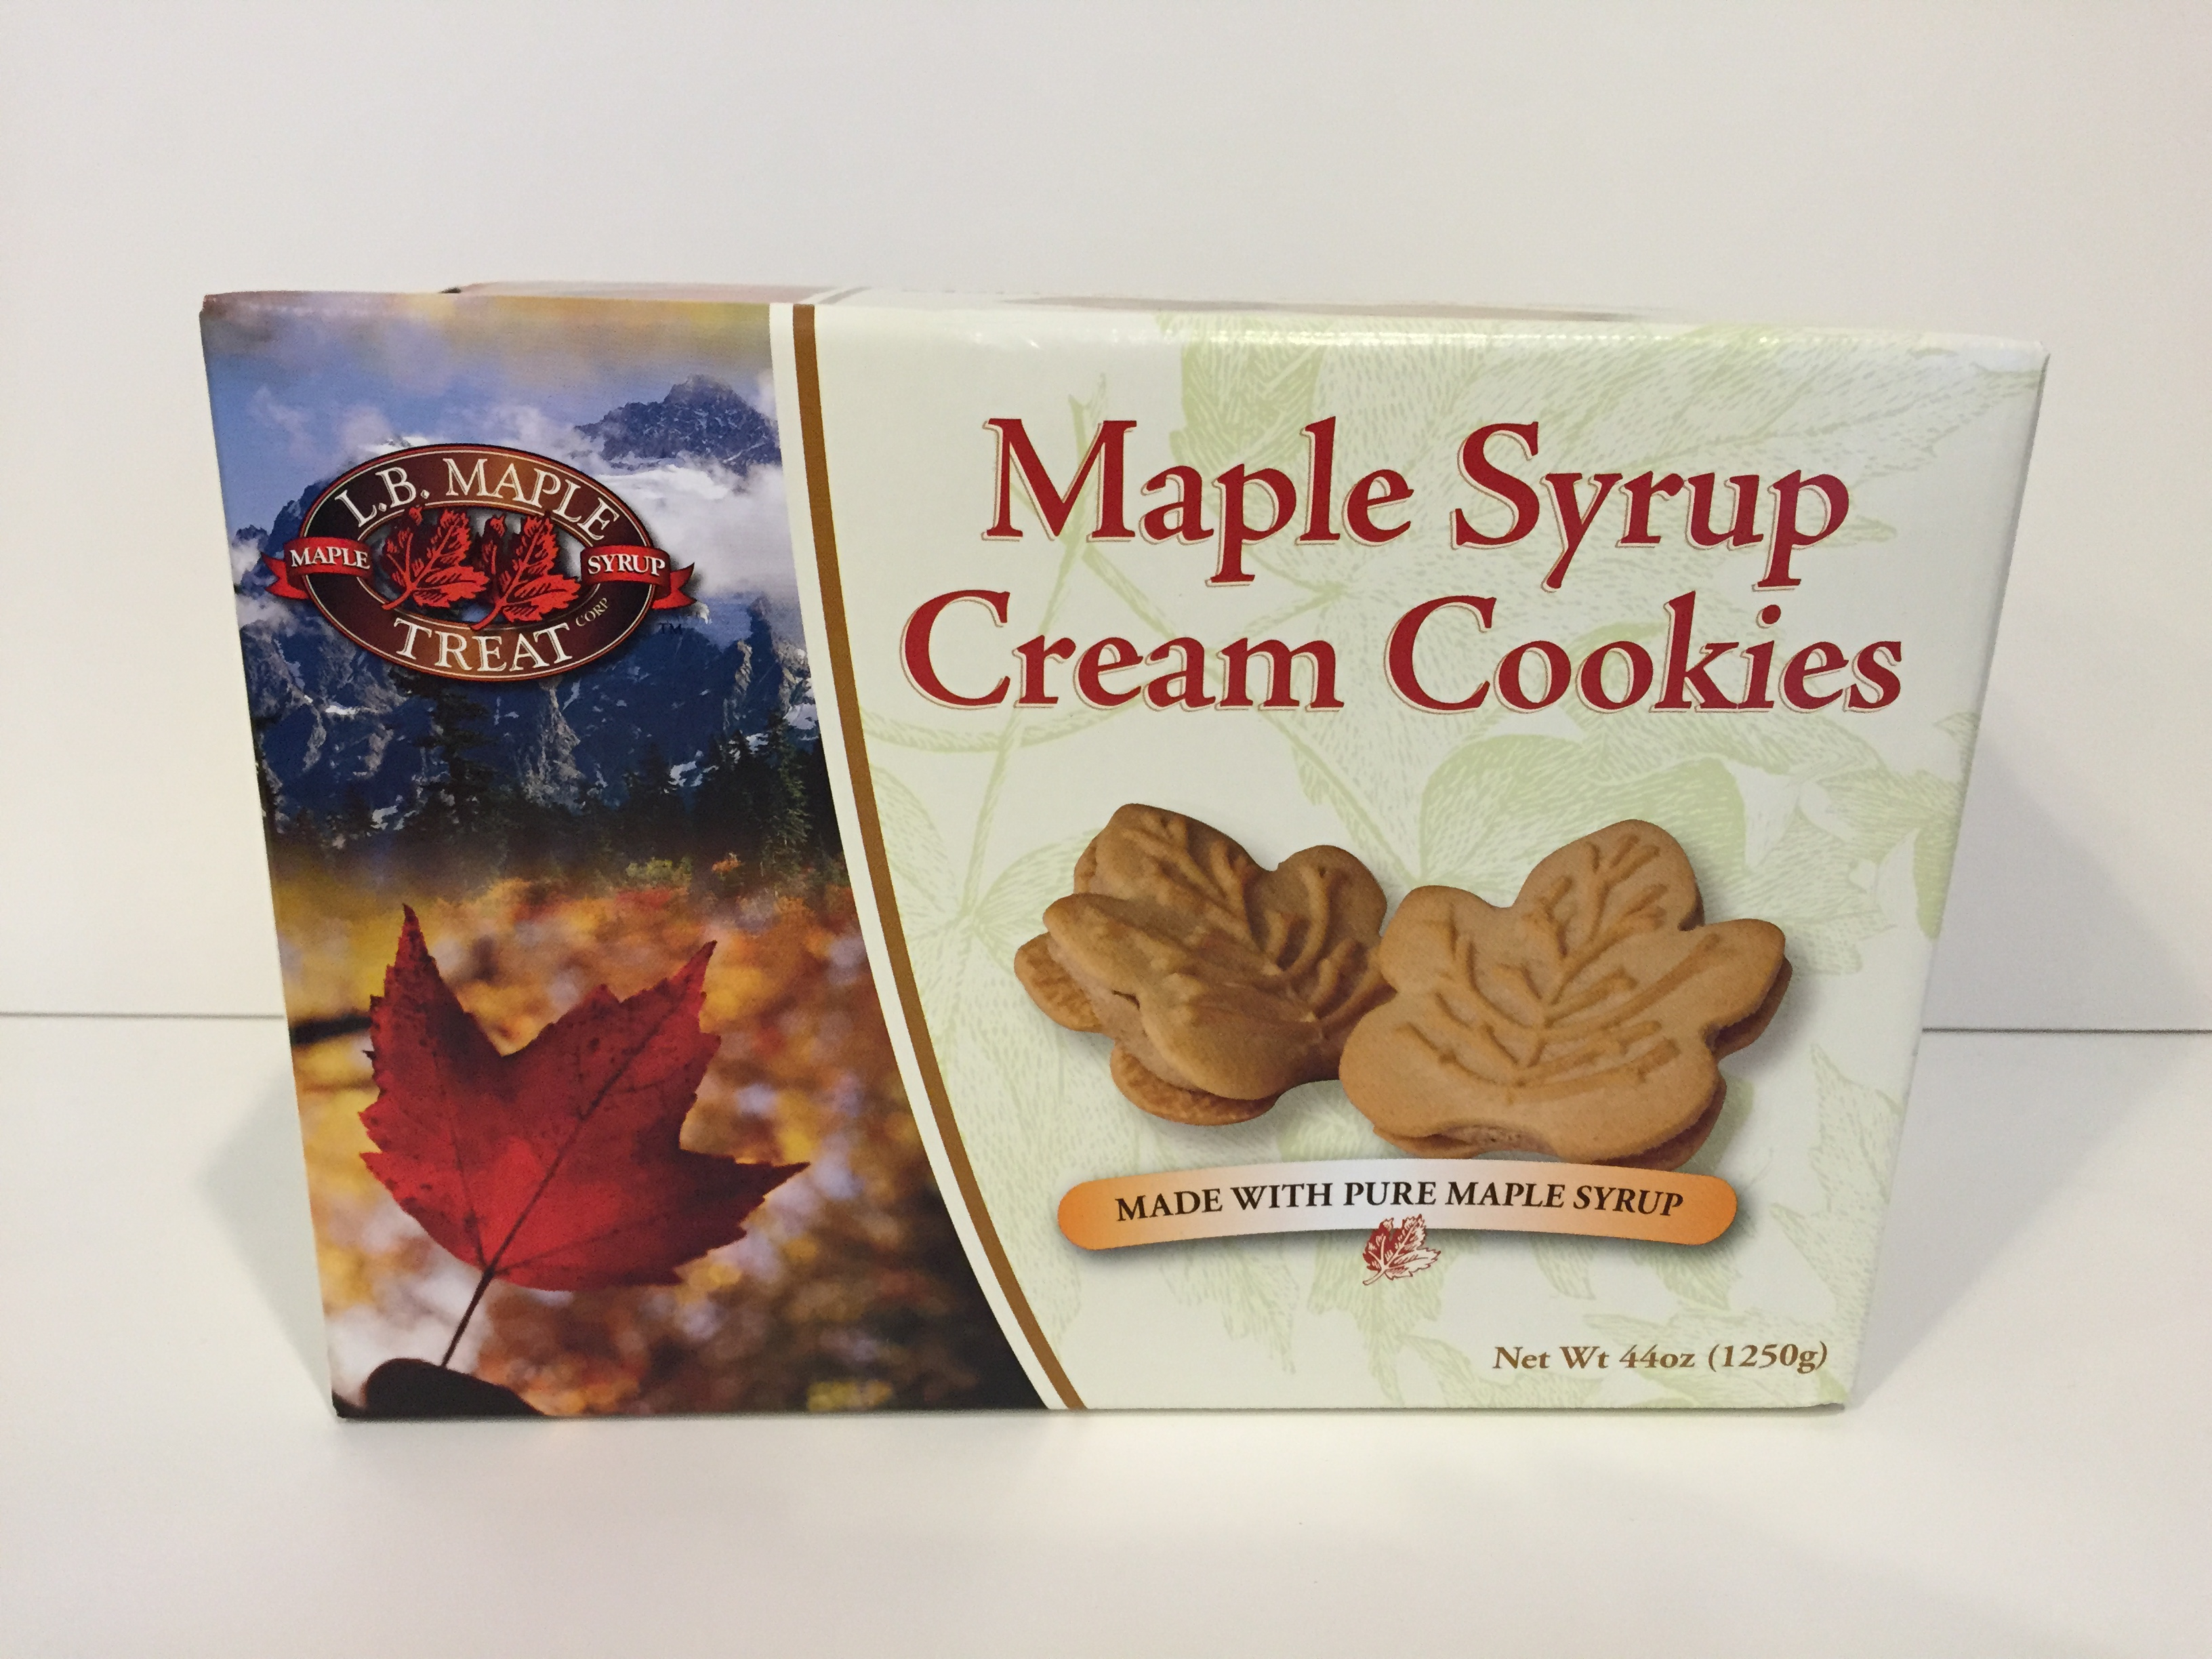 Maple Syrup Cream Cookies